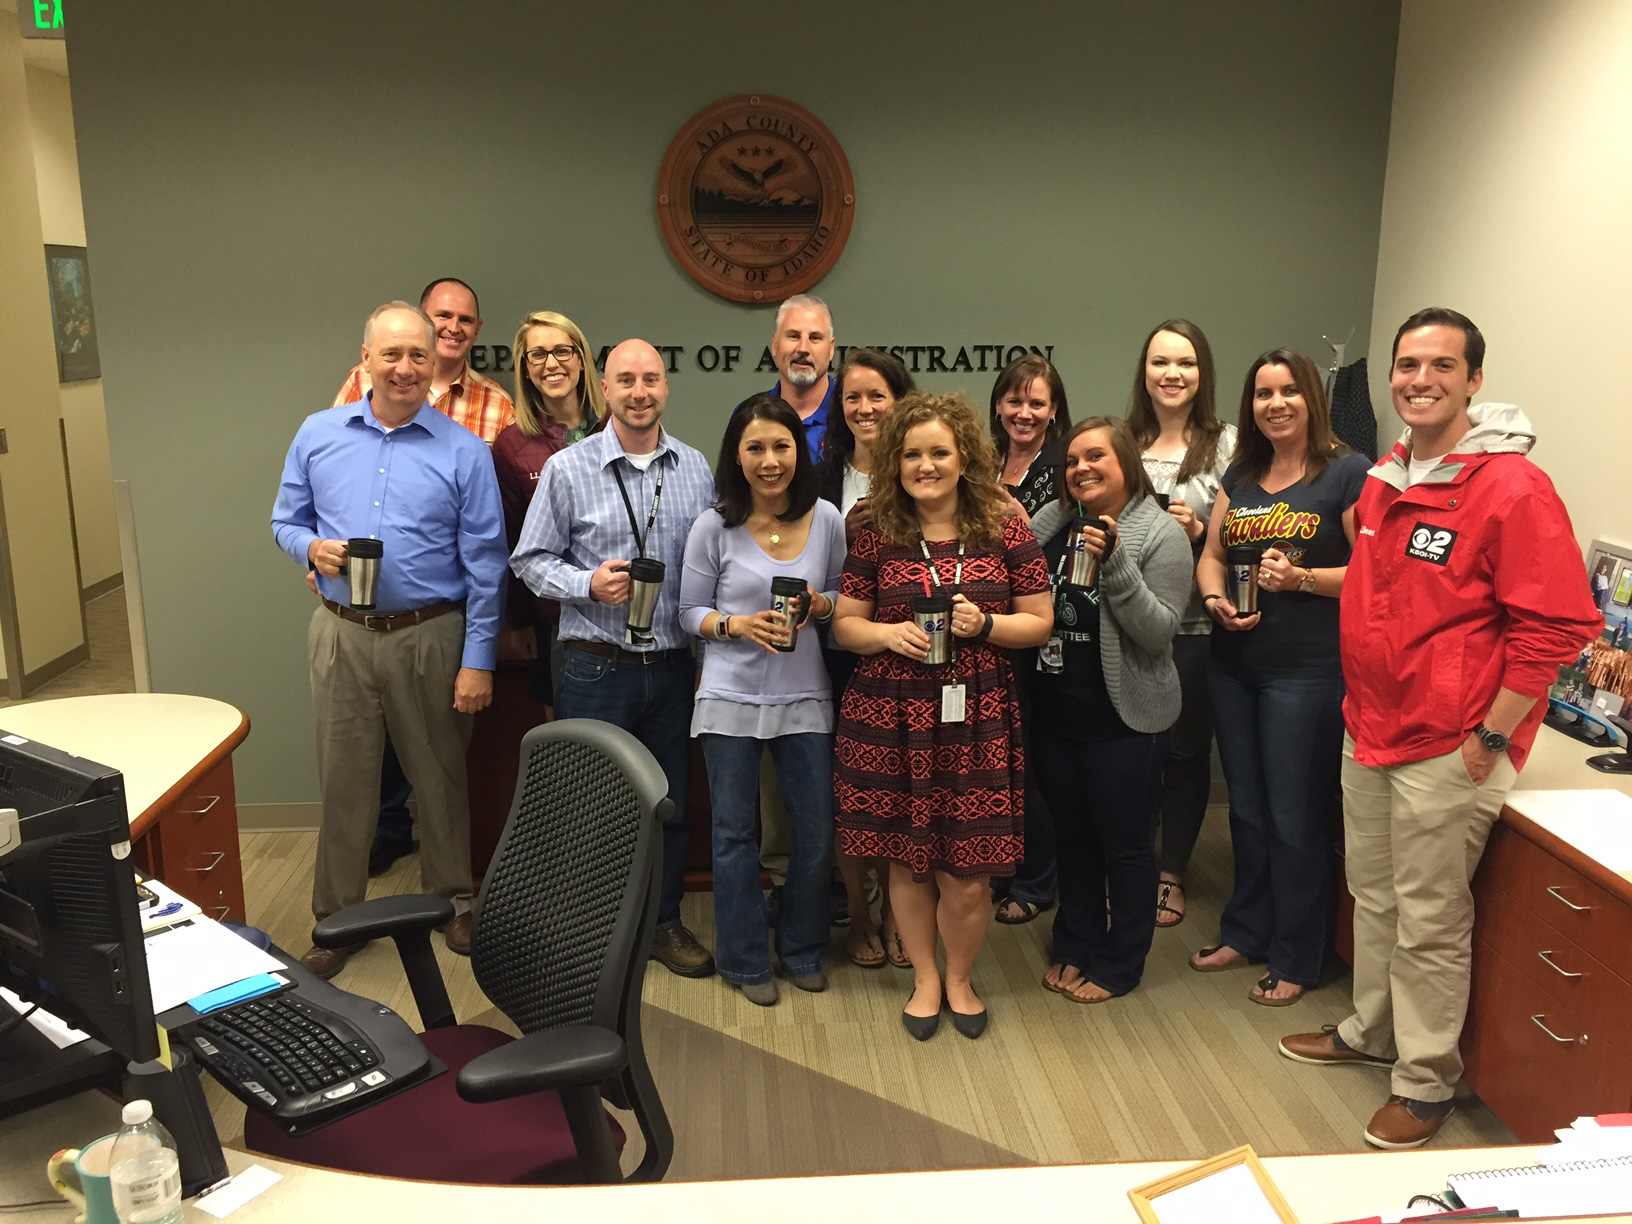 Mugshot Mondays: This week's winner is the Ada County Department of Administration in Boise! Bryan Levin and Kelsey Anderson helped deliver free Dutch Bros. Coffee and KBOI mugs! Want your business to be next? Enter: http://bit.ly/1UoKo3X